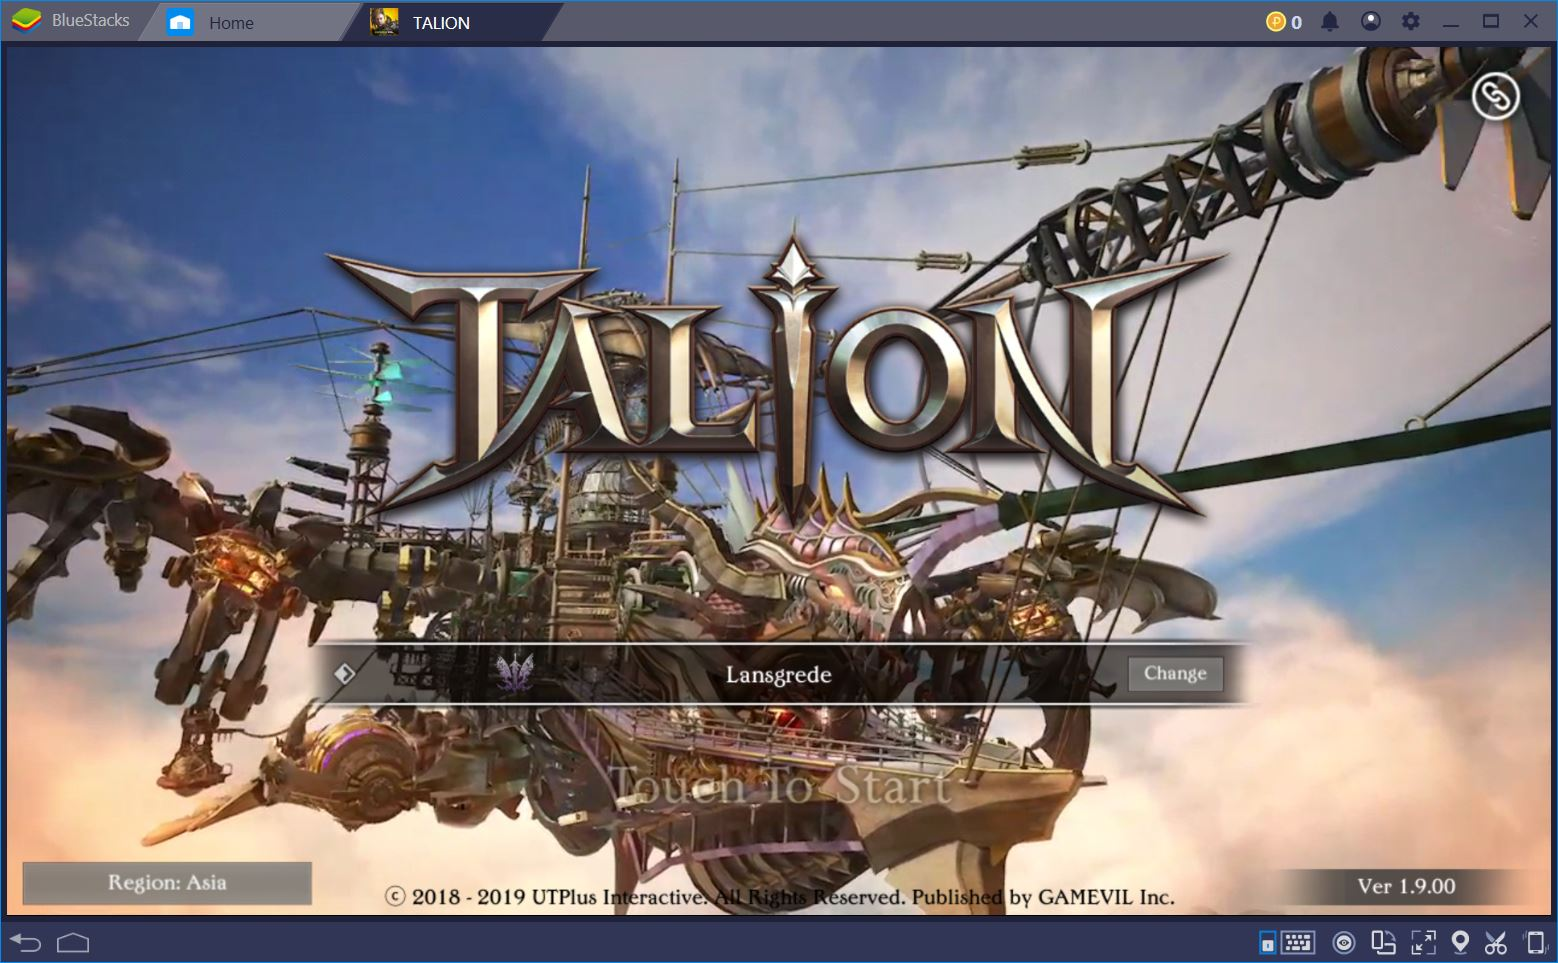 How to Install and Customize Talion with BlueStacks